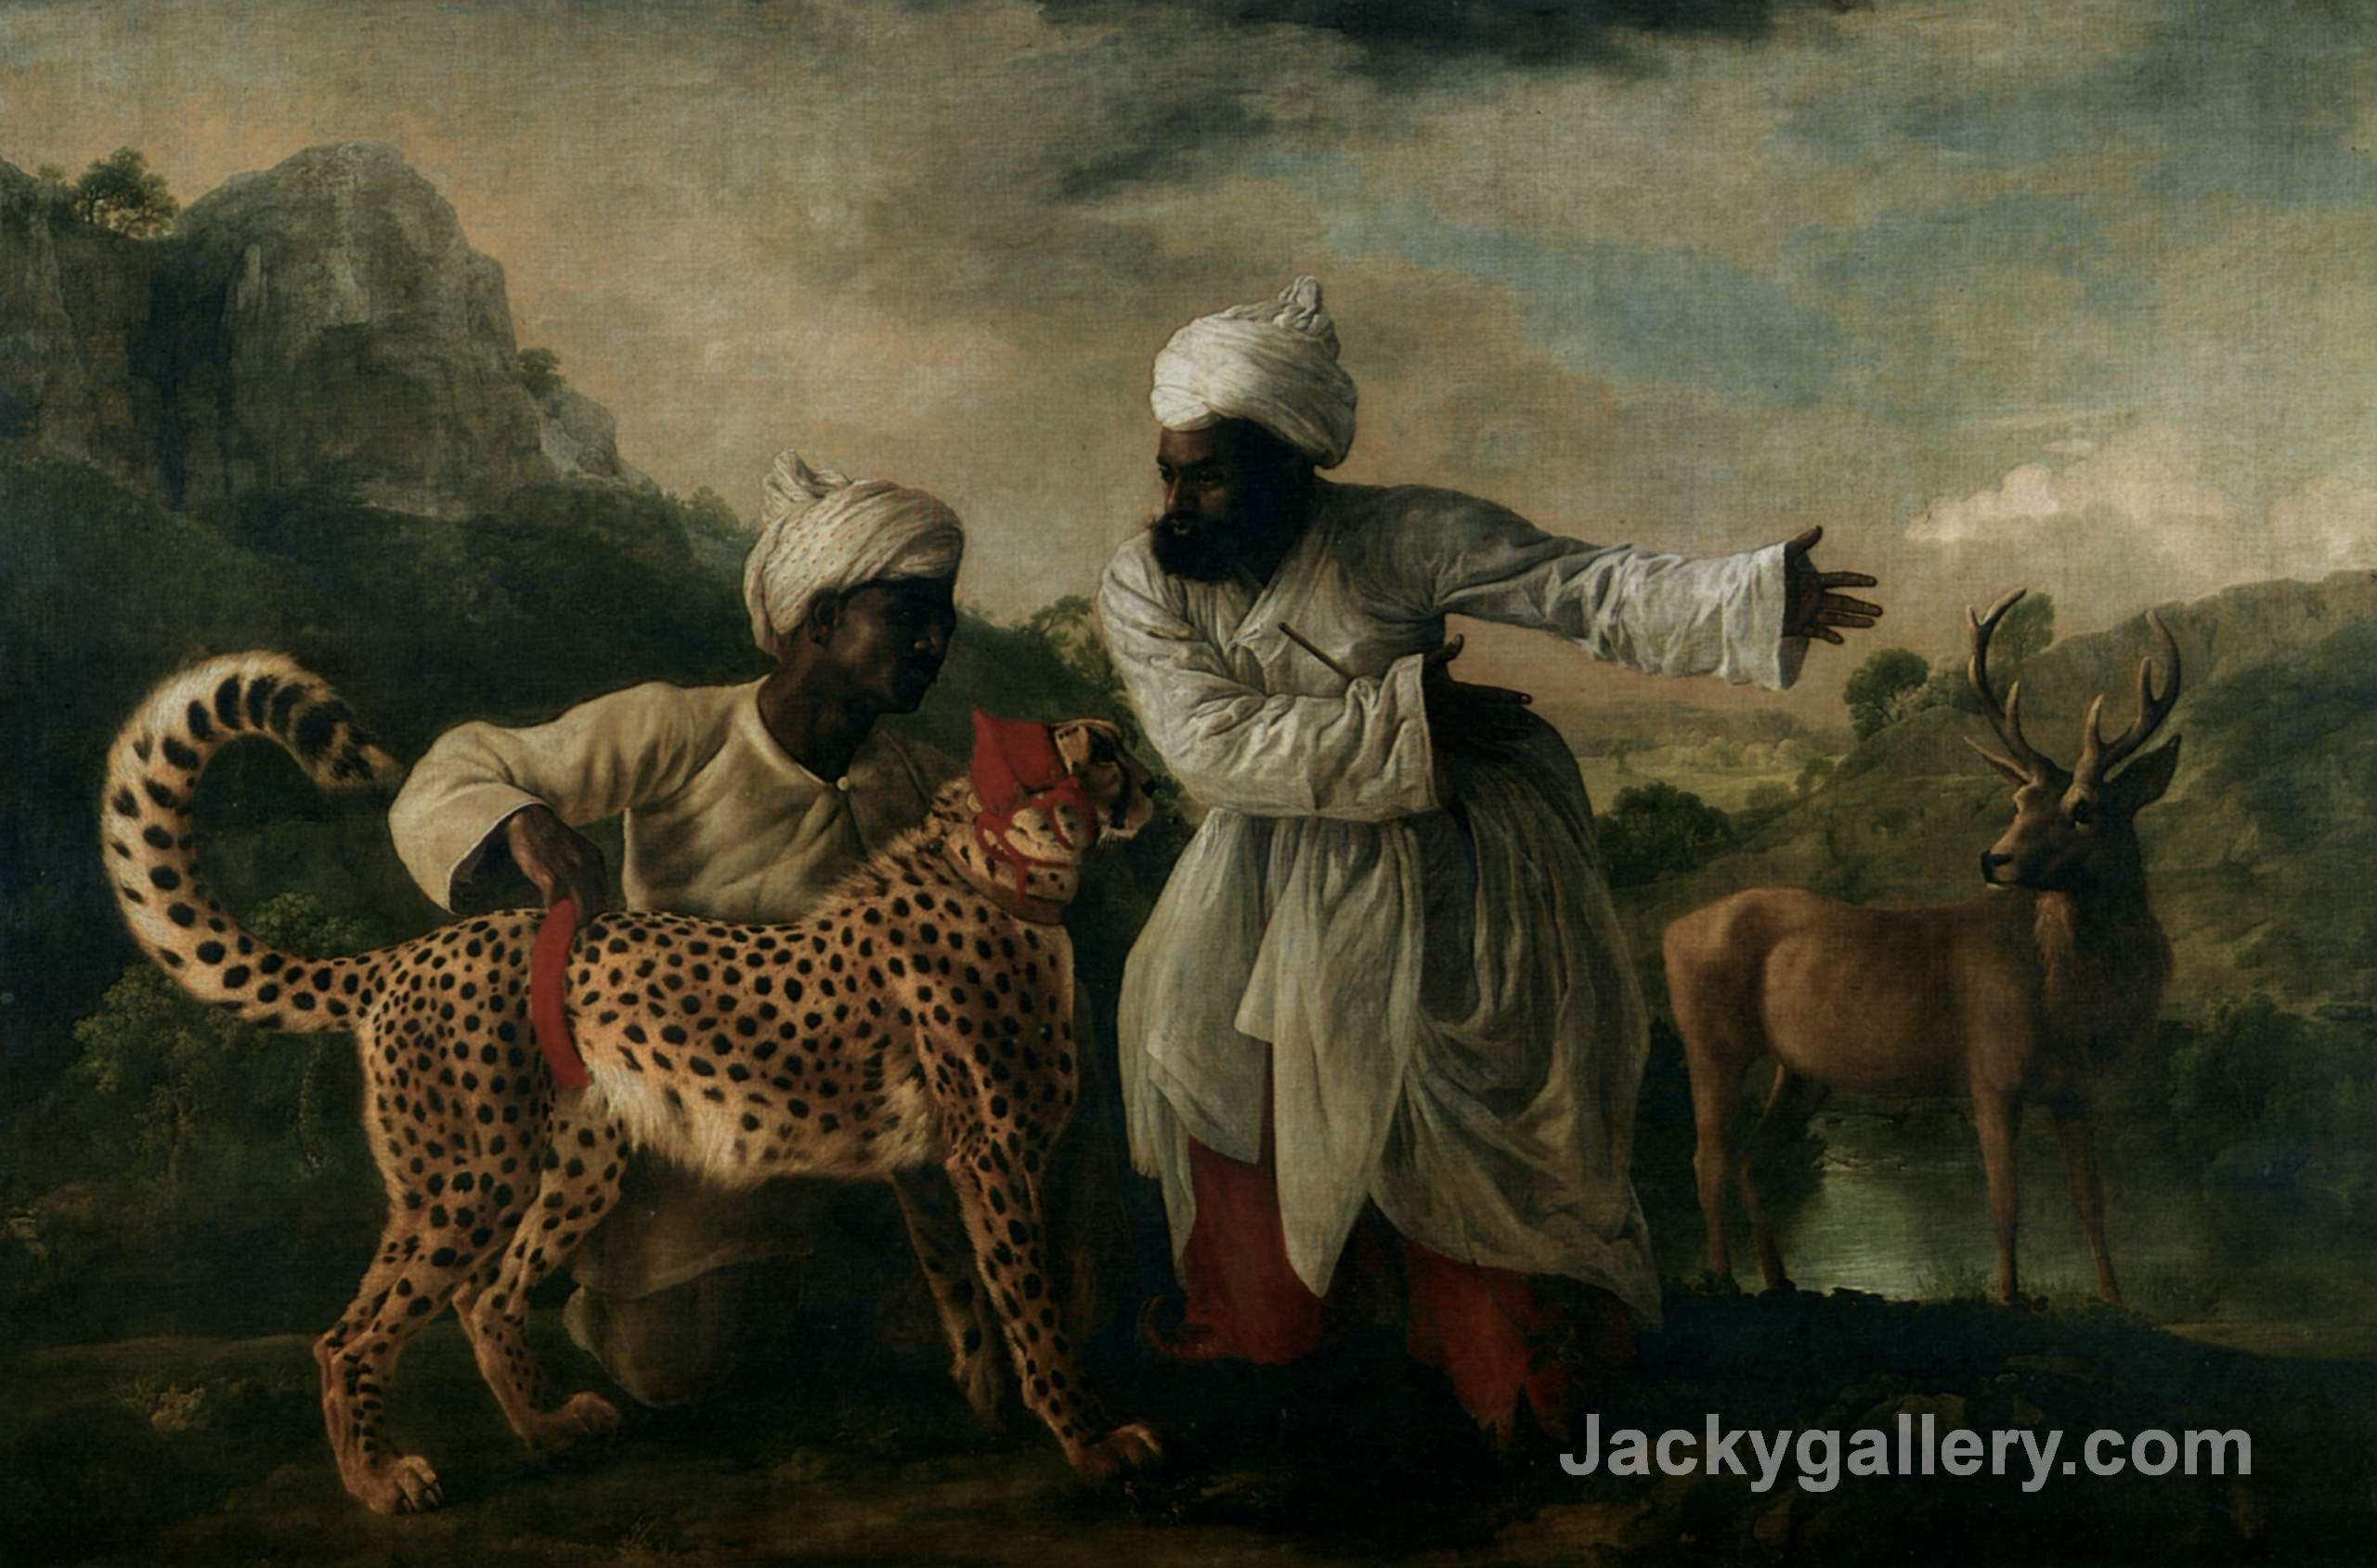 Cheetah With Two Indian Servants And A Deer by George Stubbs paintings reproduction